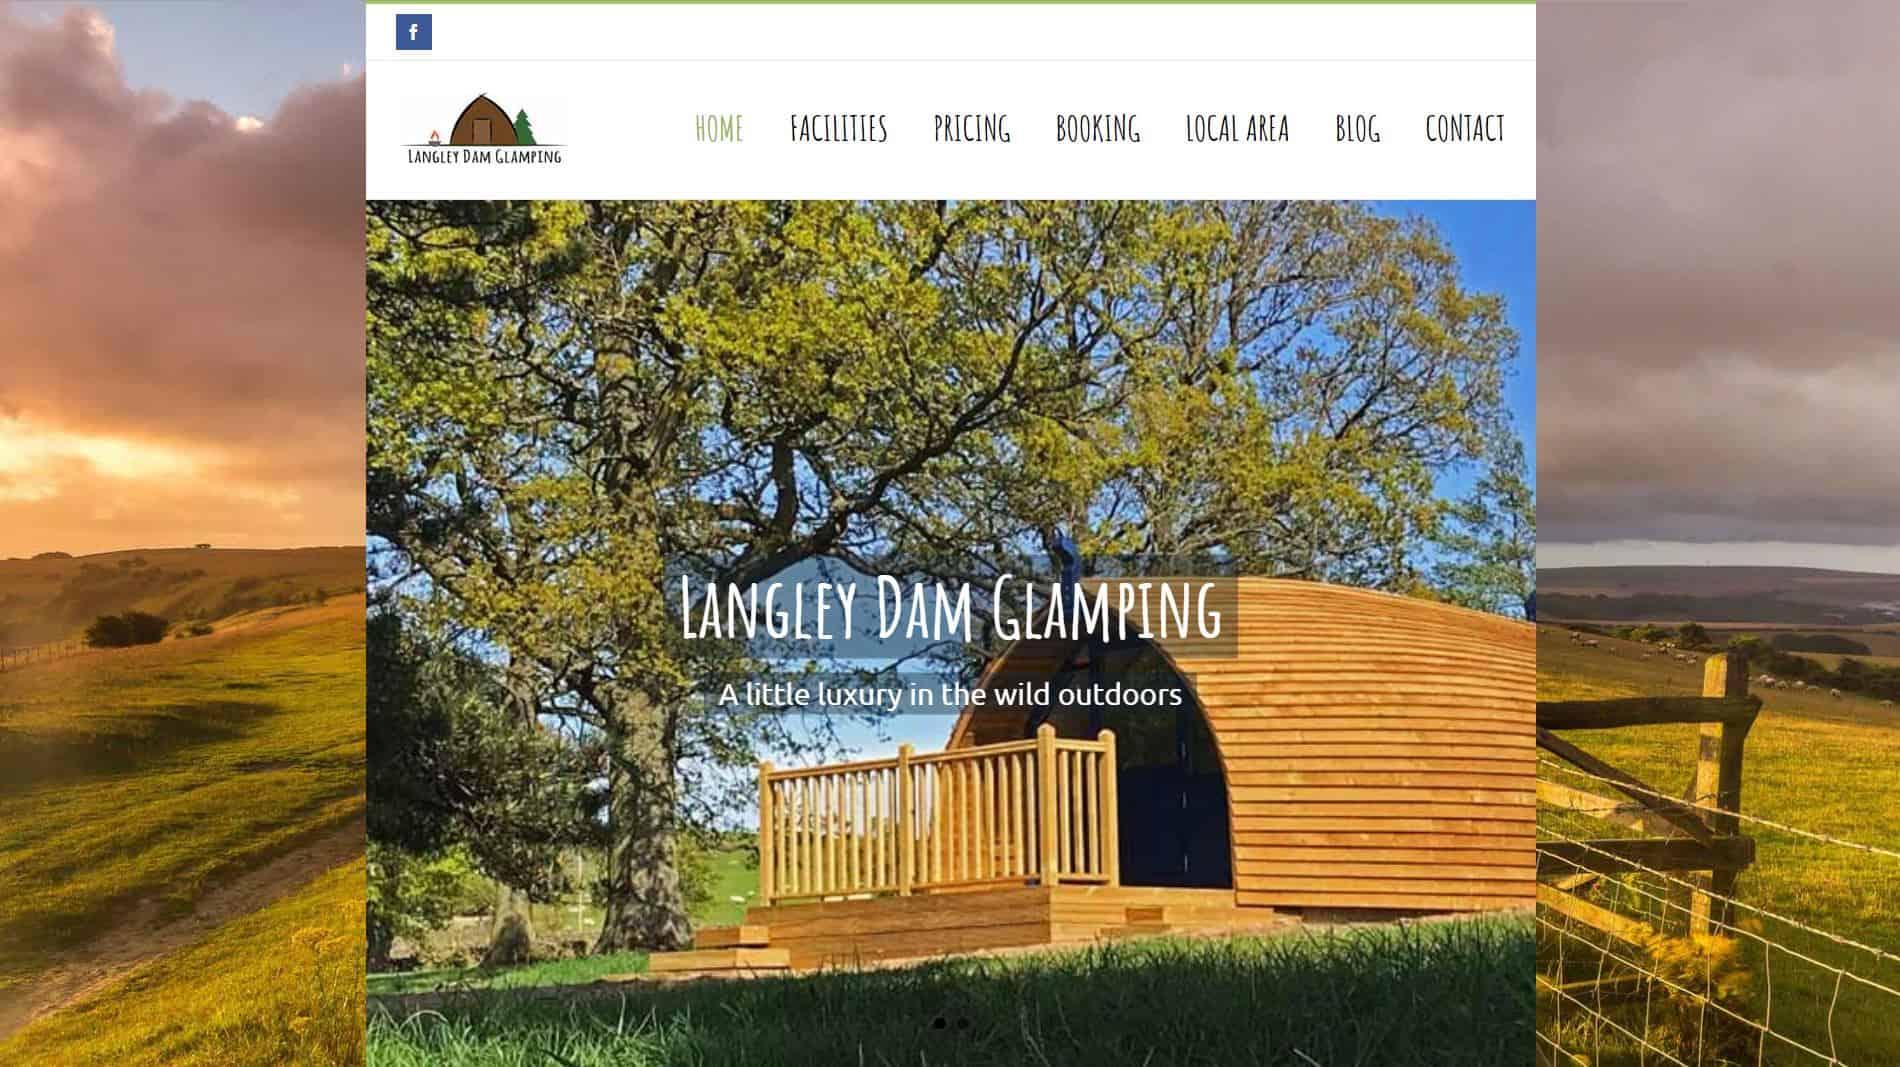 Good luck to Langley Glamping